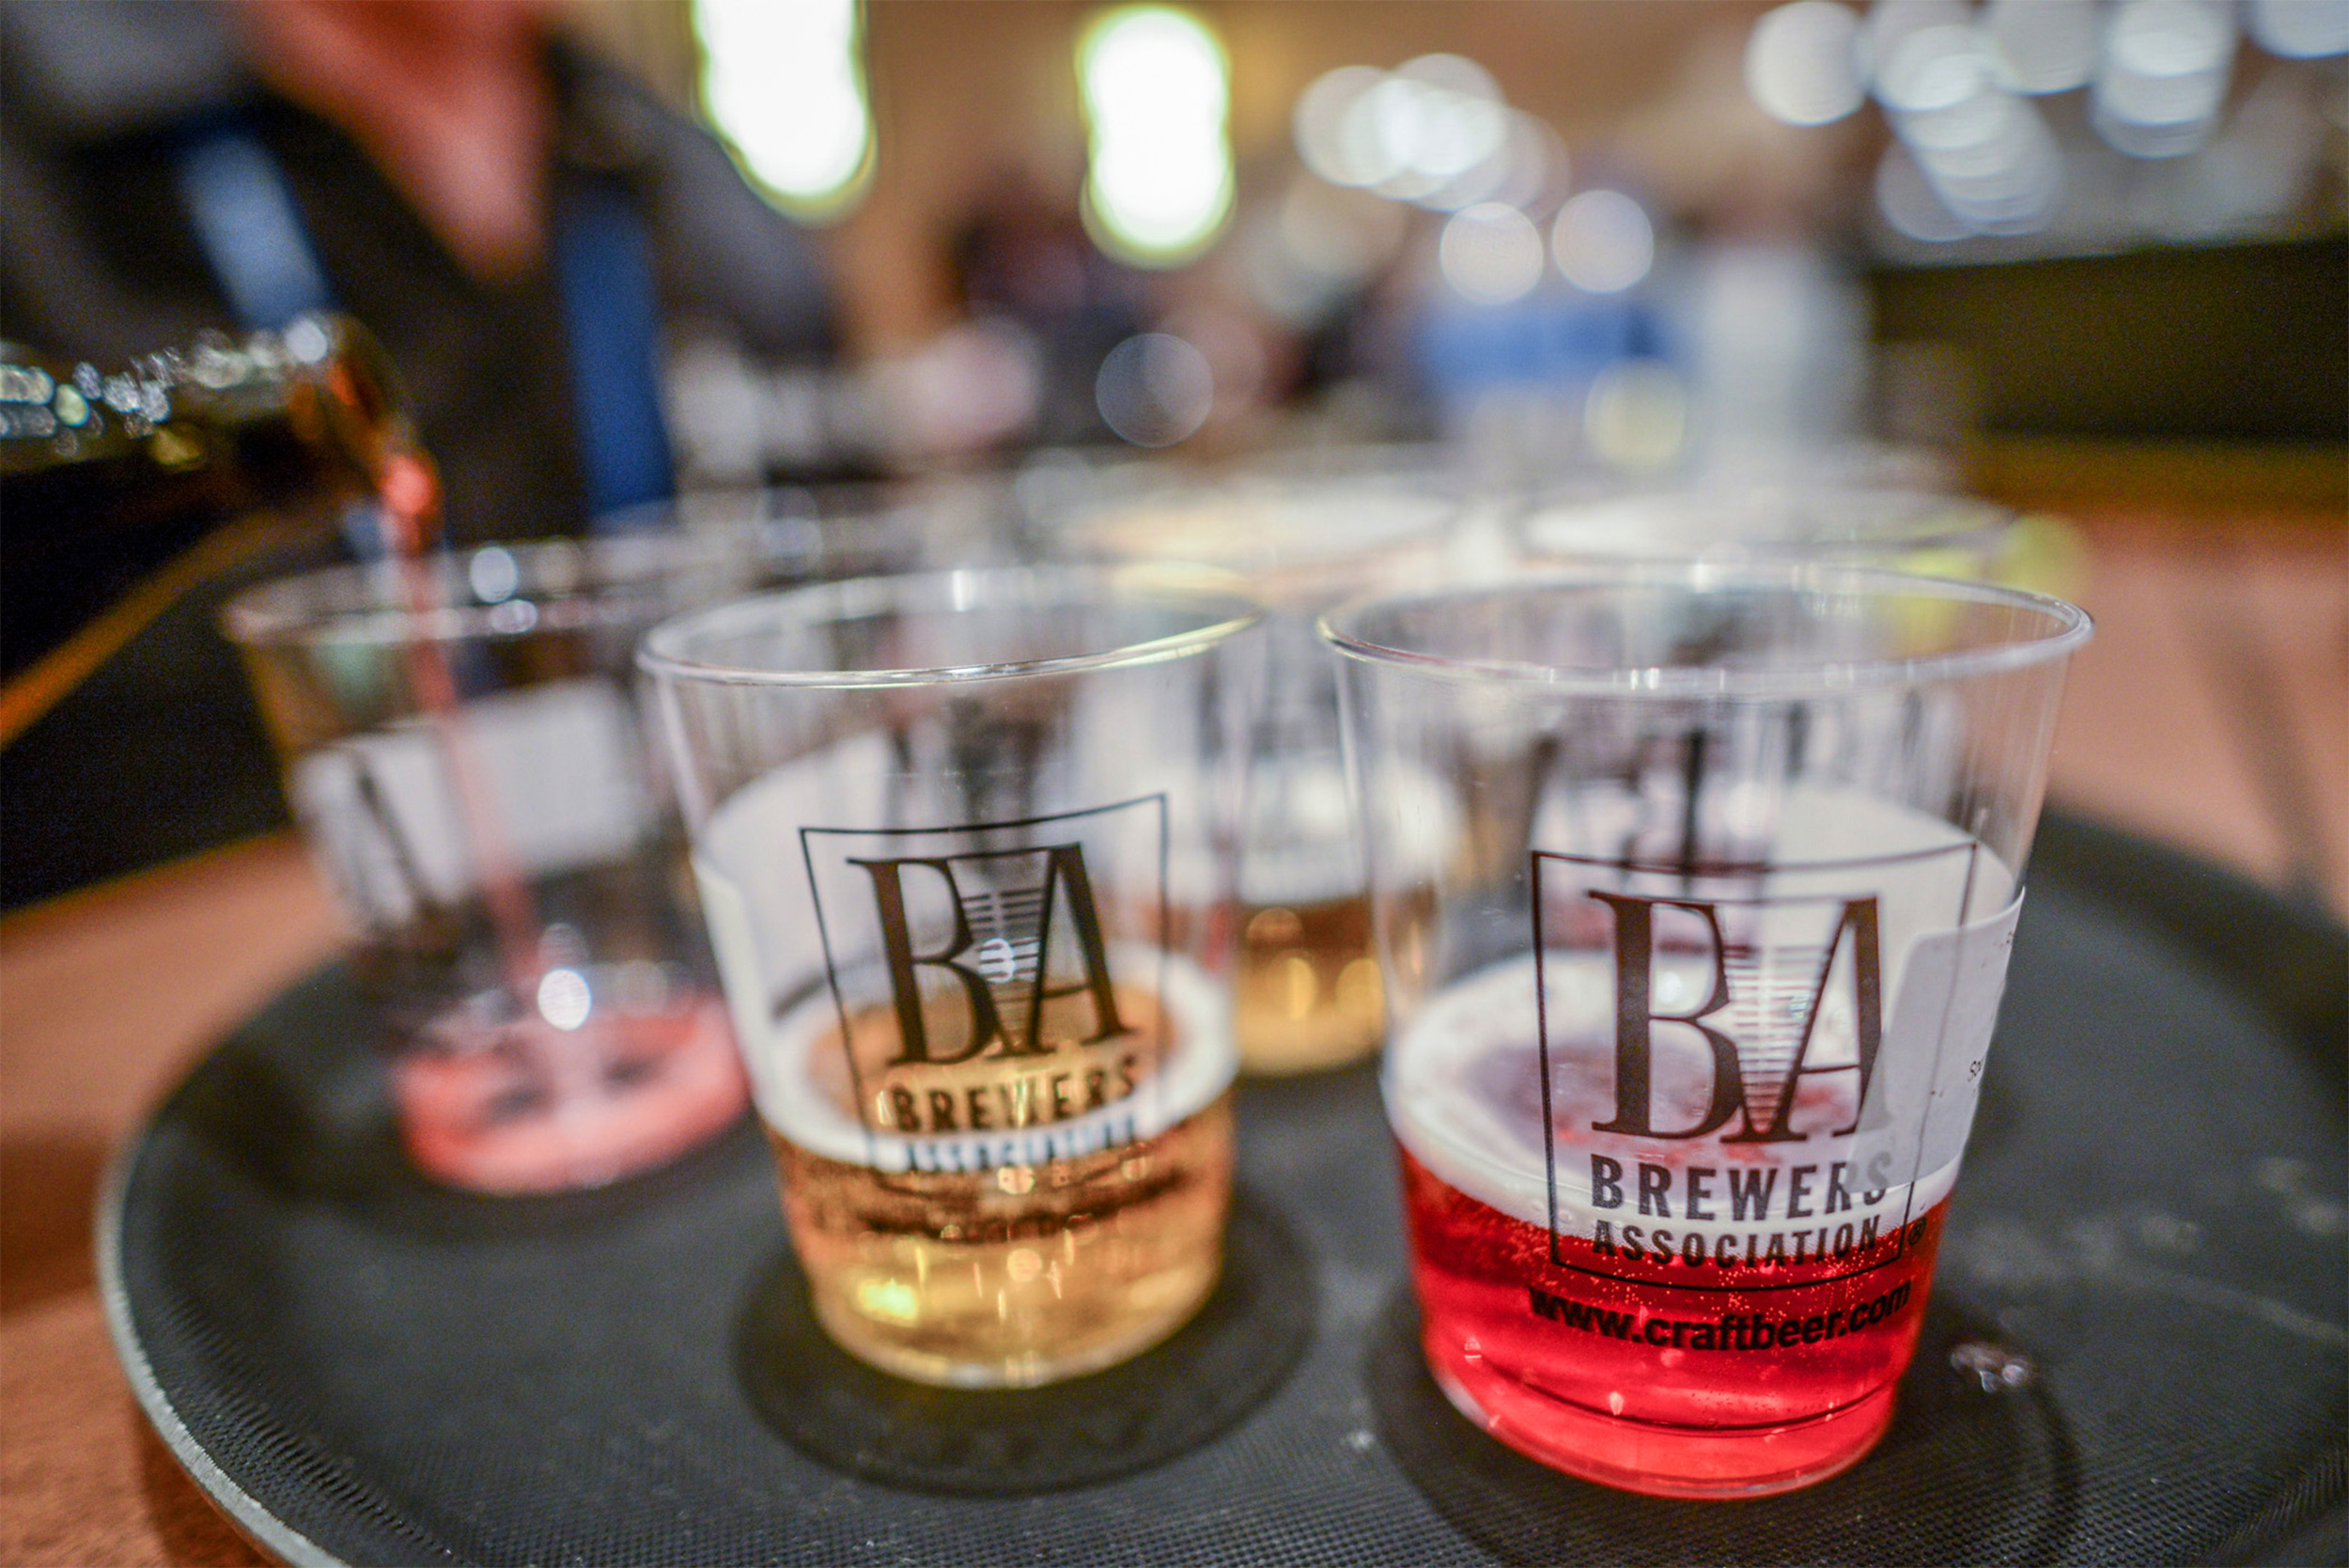 GABF Results: Virginia Breweries Score 4 Medals